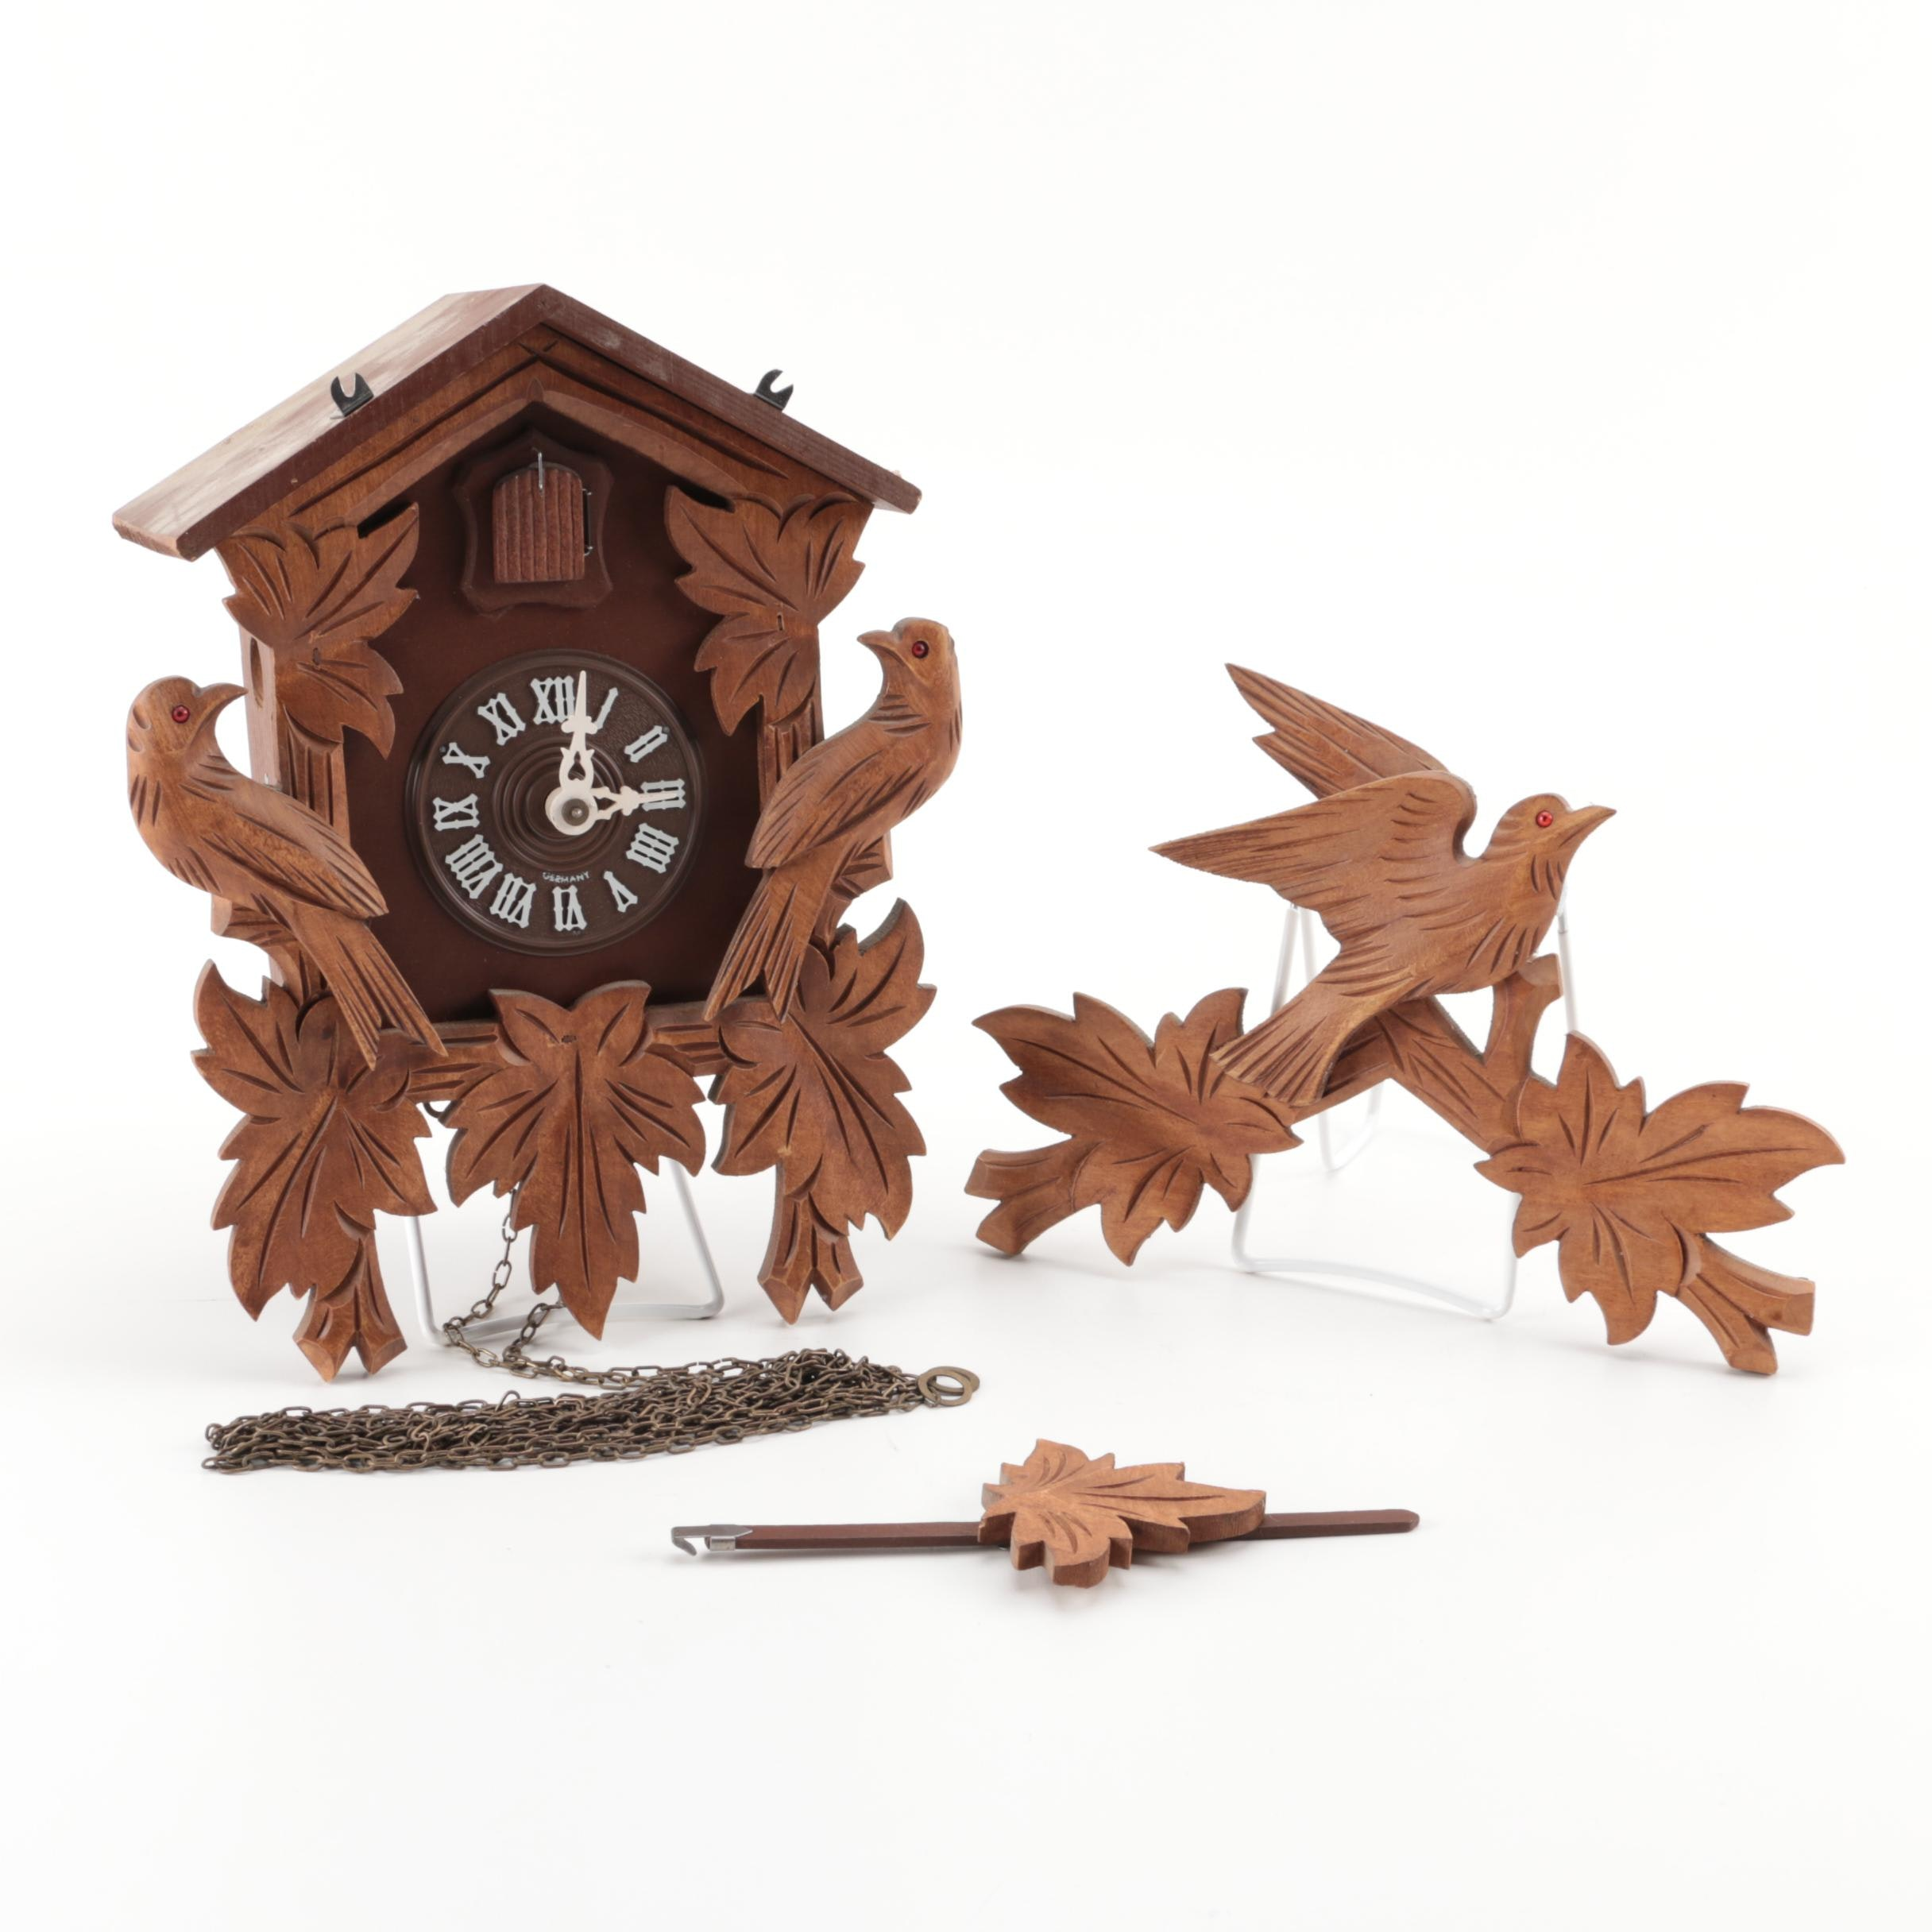 Regula German Wooden Cuckoo Clock With Carved Bird and Leaf Motif